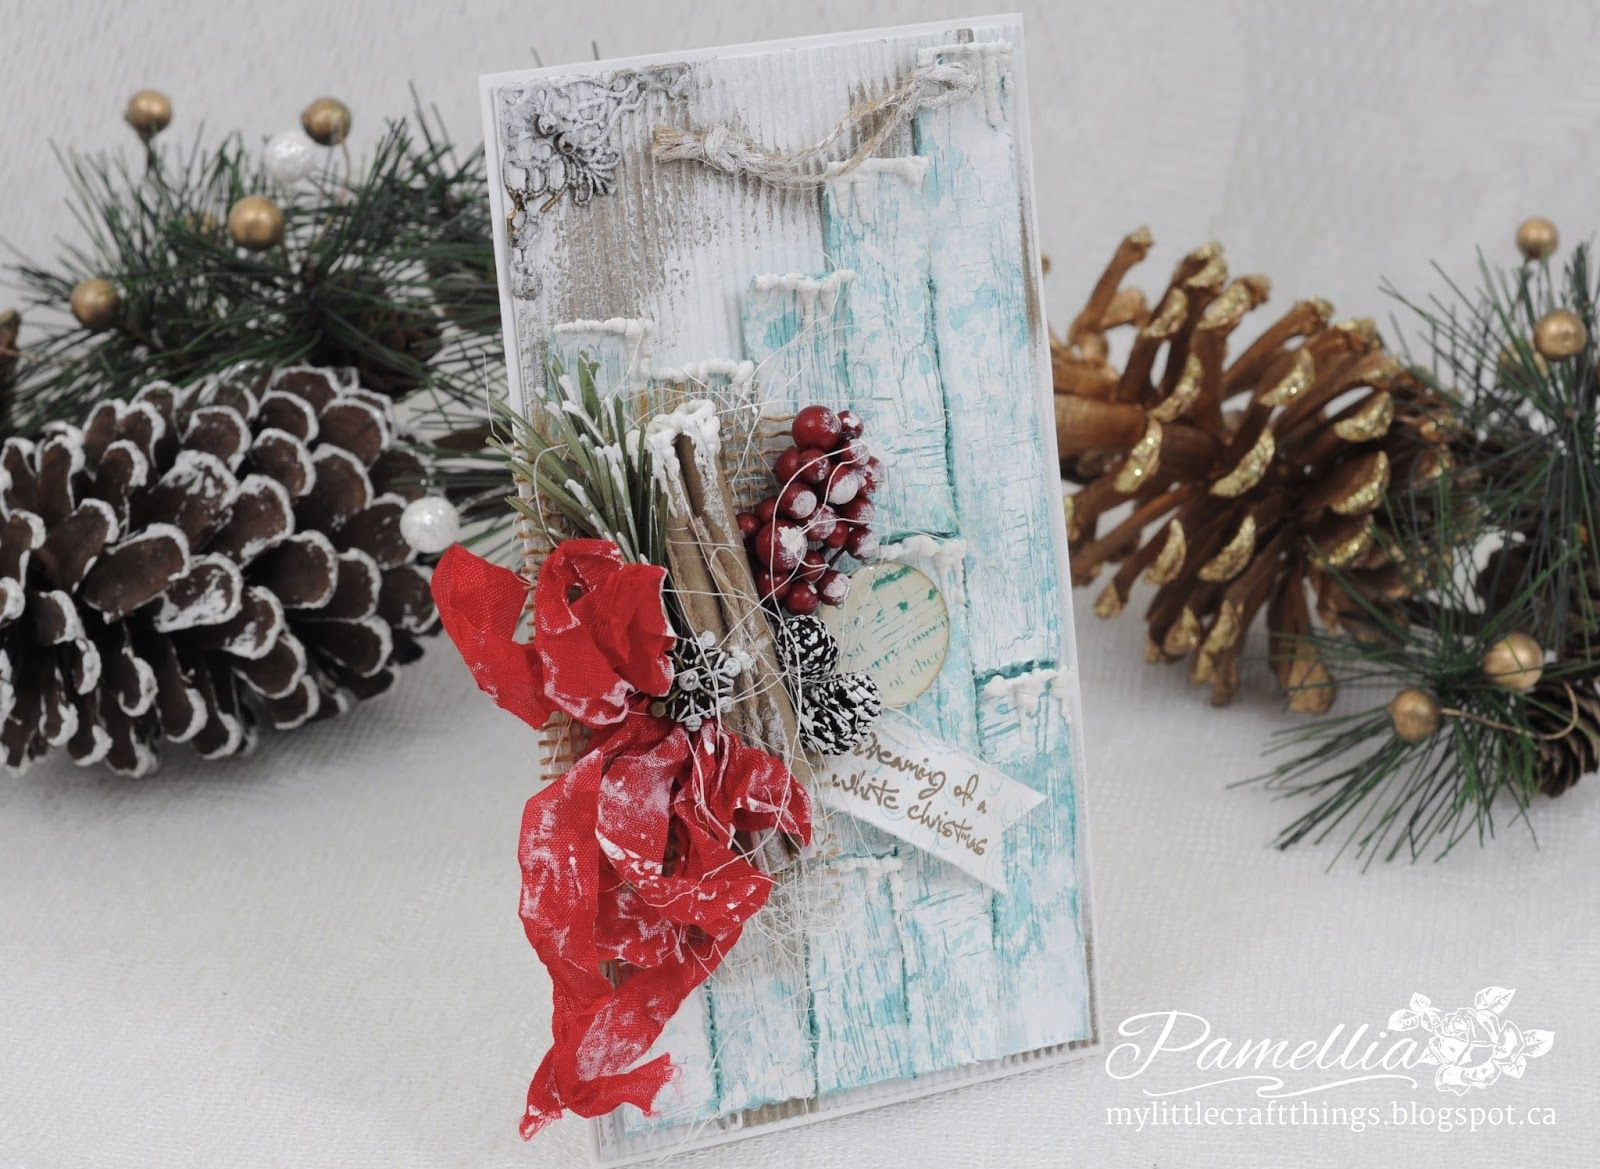 My Little Craft Things: Try it on Tuesday - Christmas is Coming